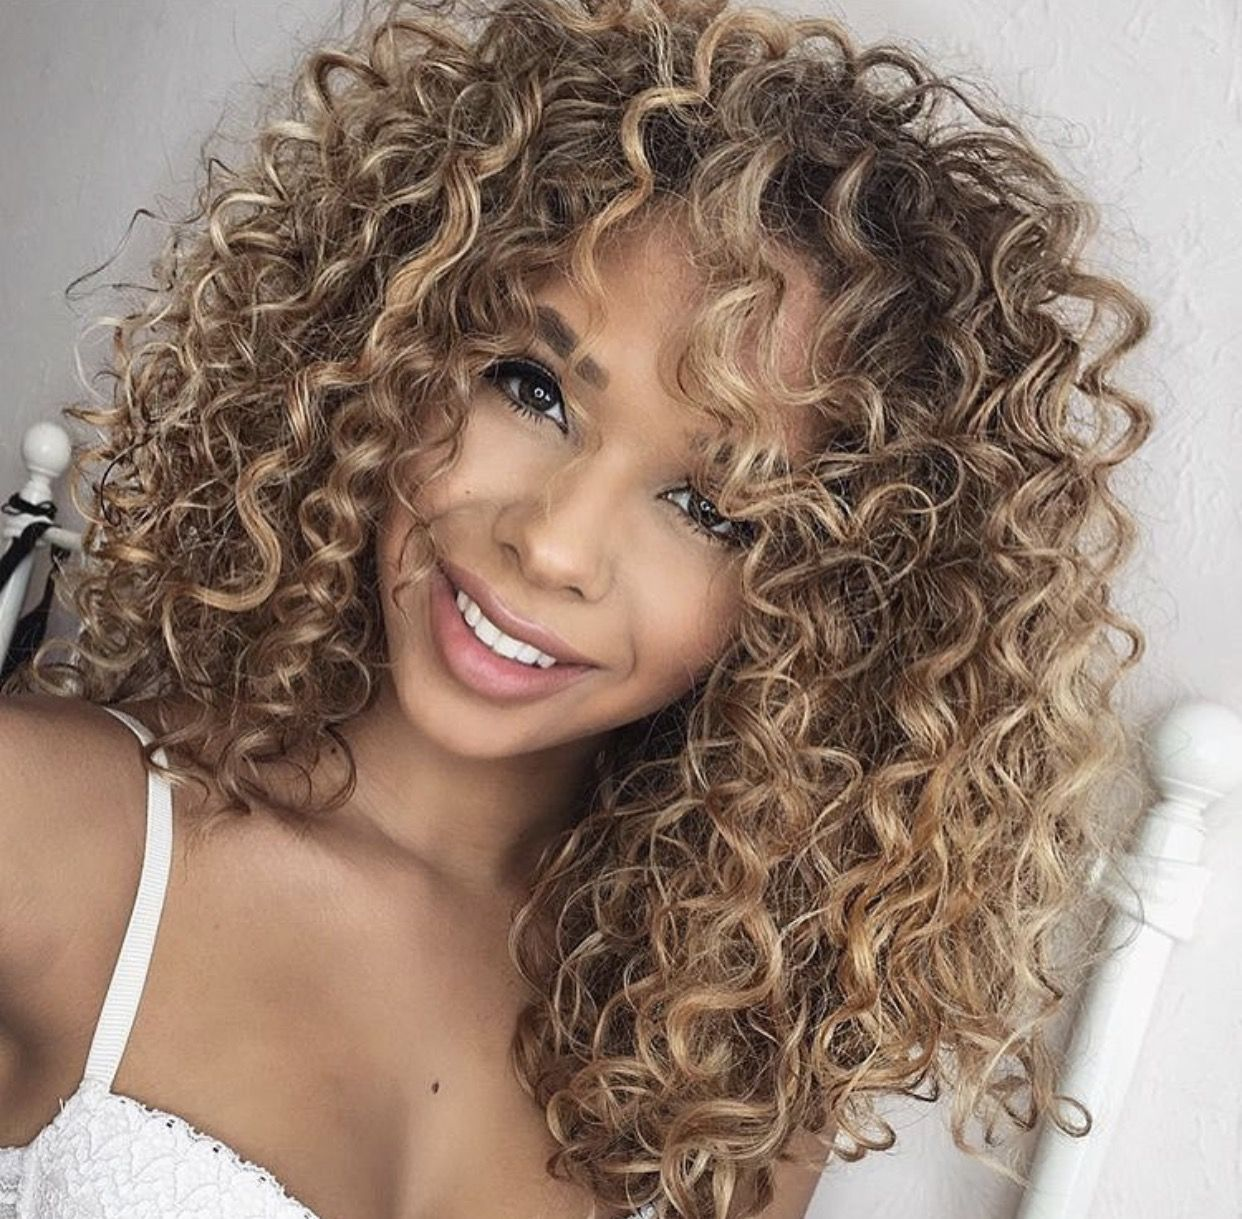 Curly hair care Biracial hair Nail care Mixed girls